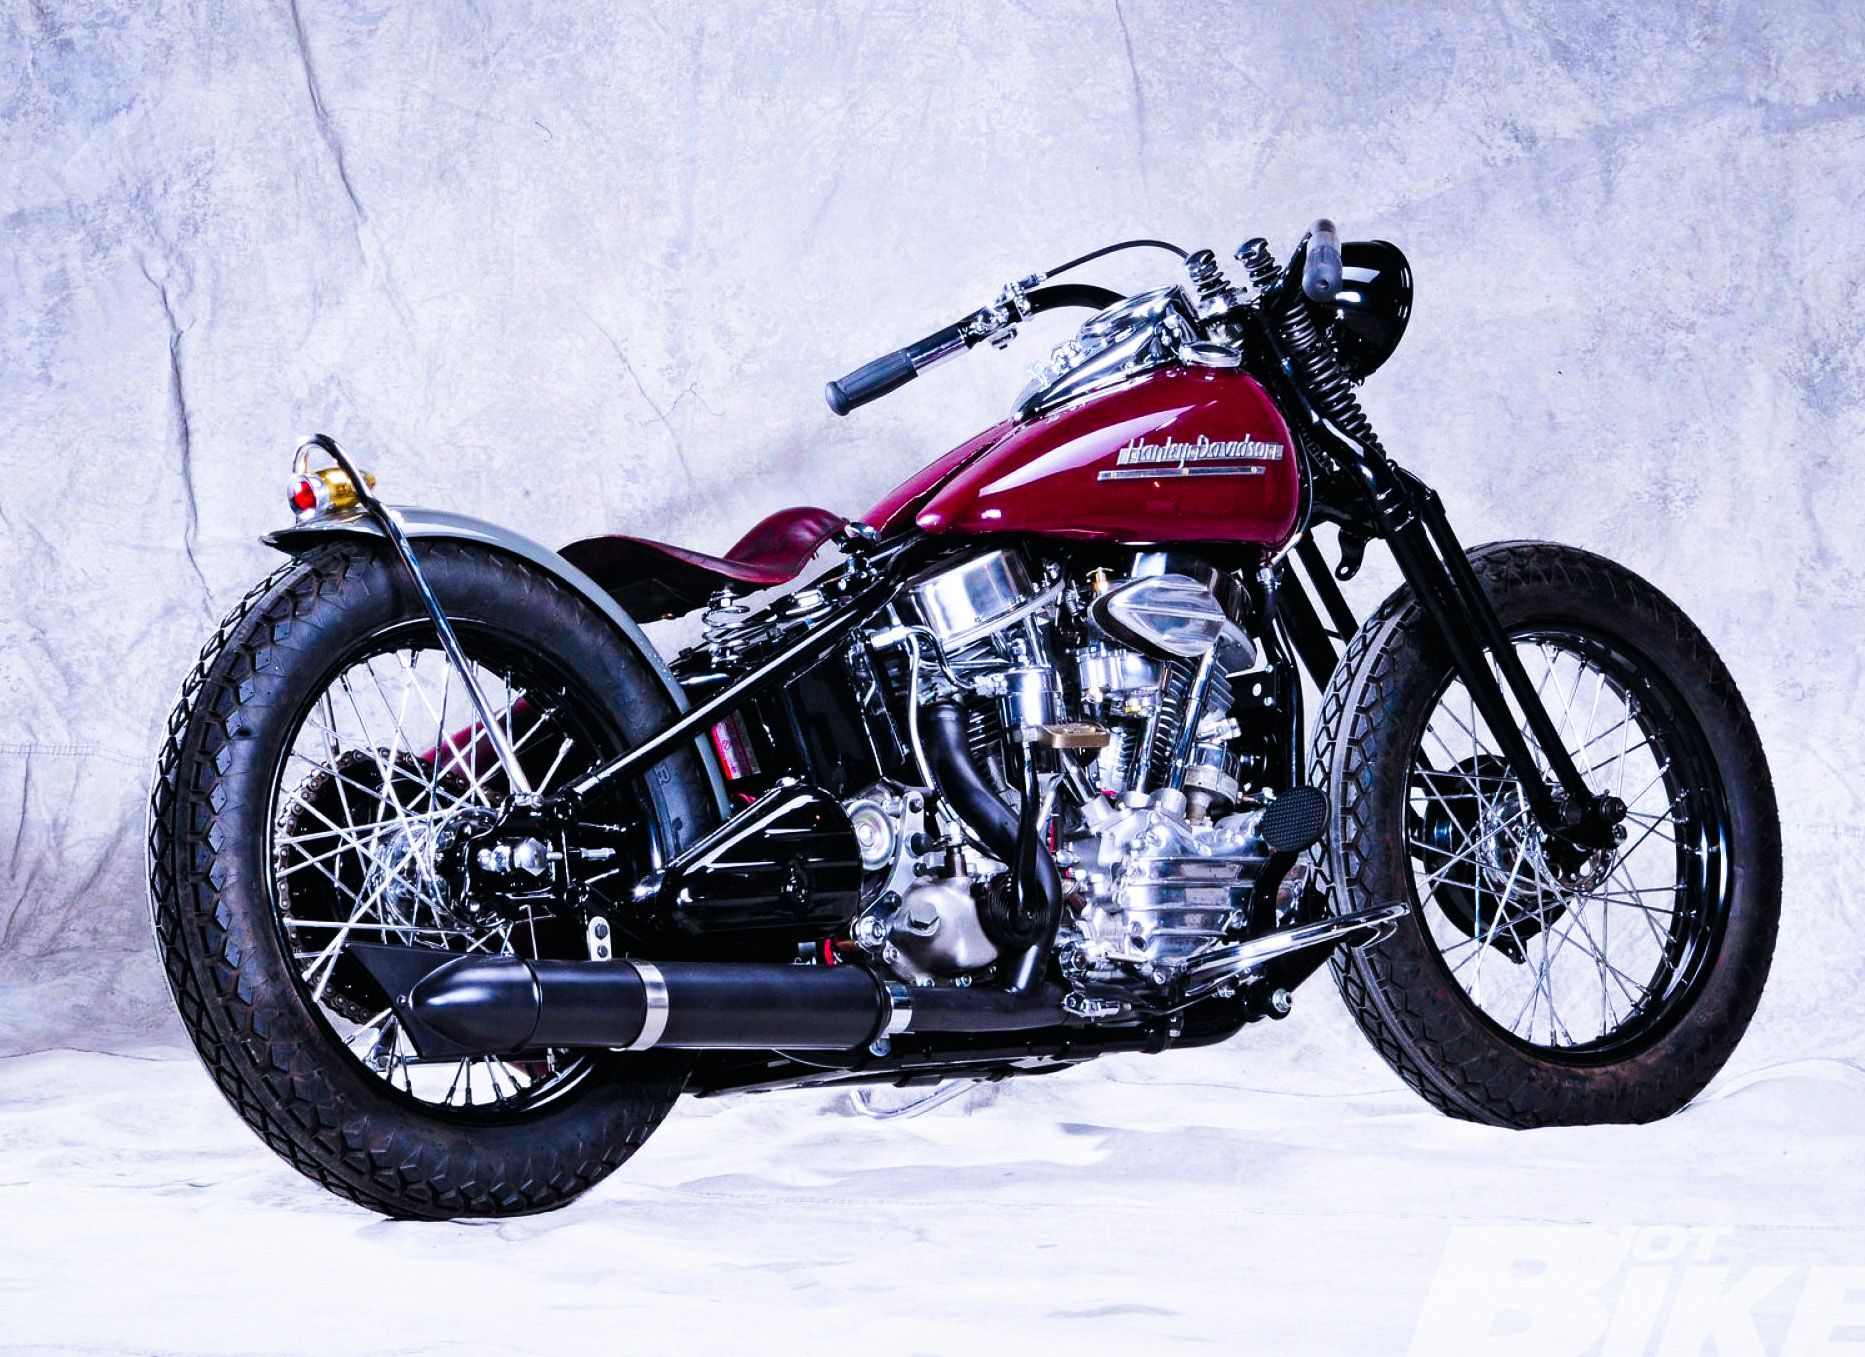 The Perfect 1953 Harley Davidson FL Panhead from Craigslist to